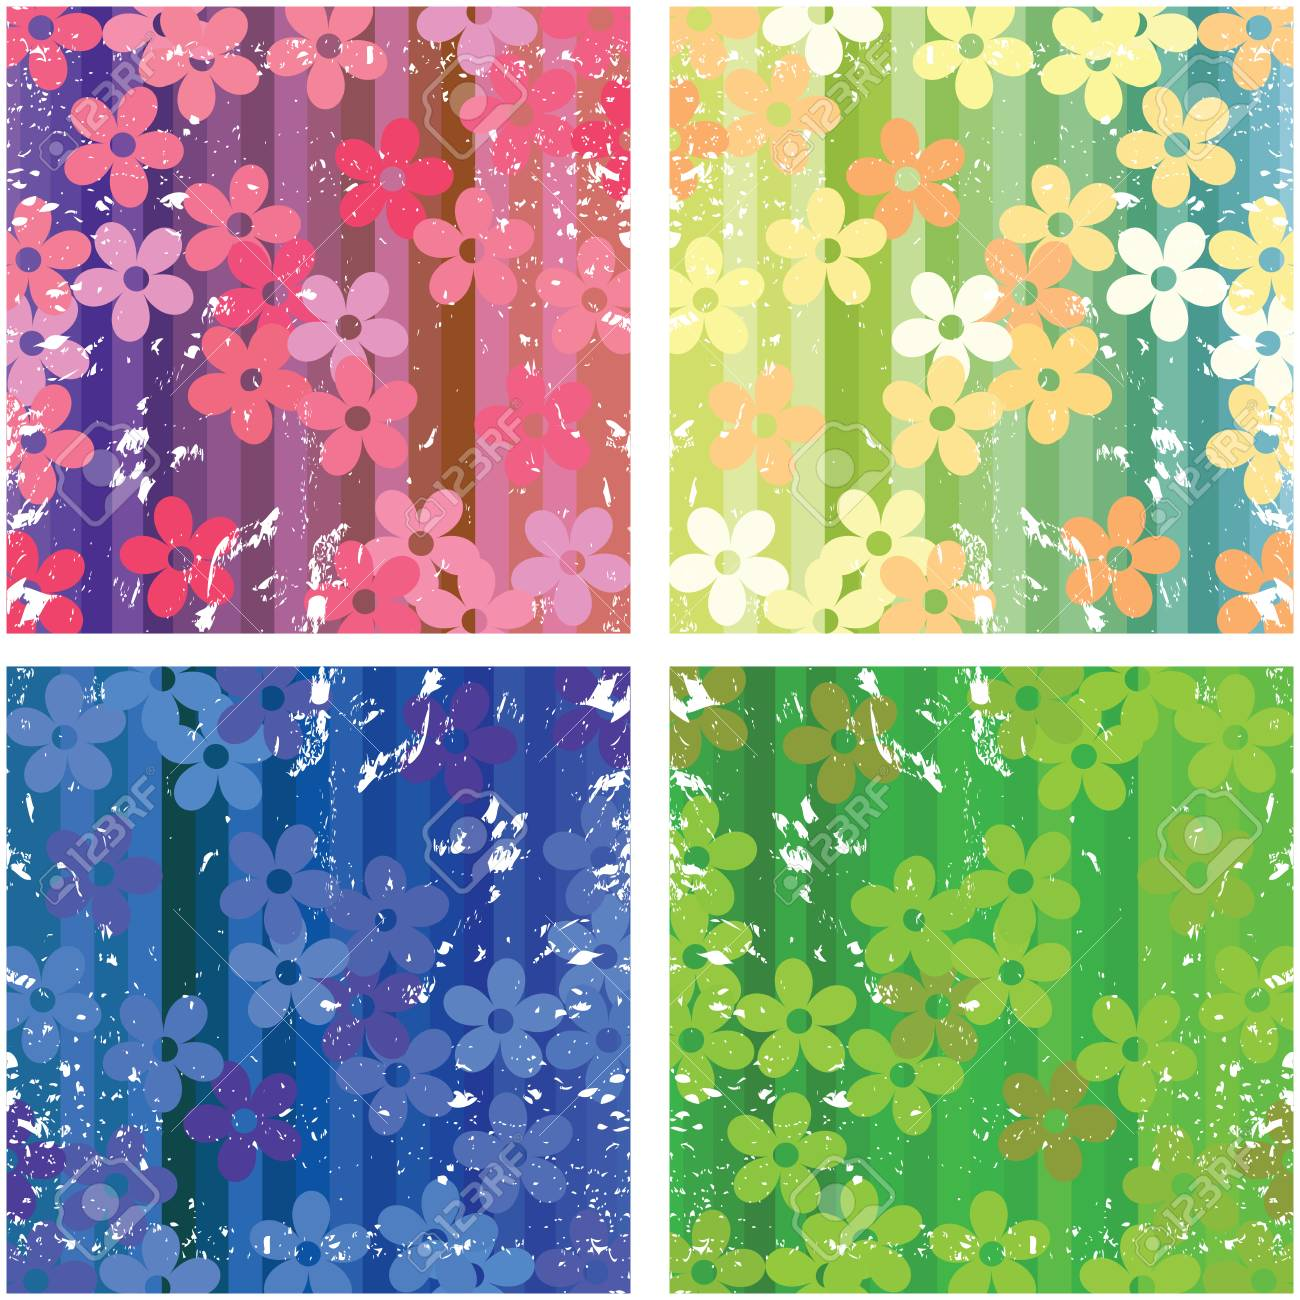 Floral textures with grunge filter for web design Stock Vector - 6057617